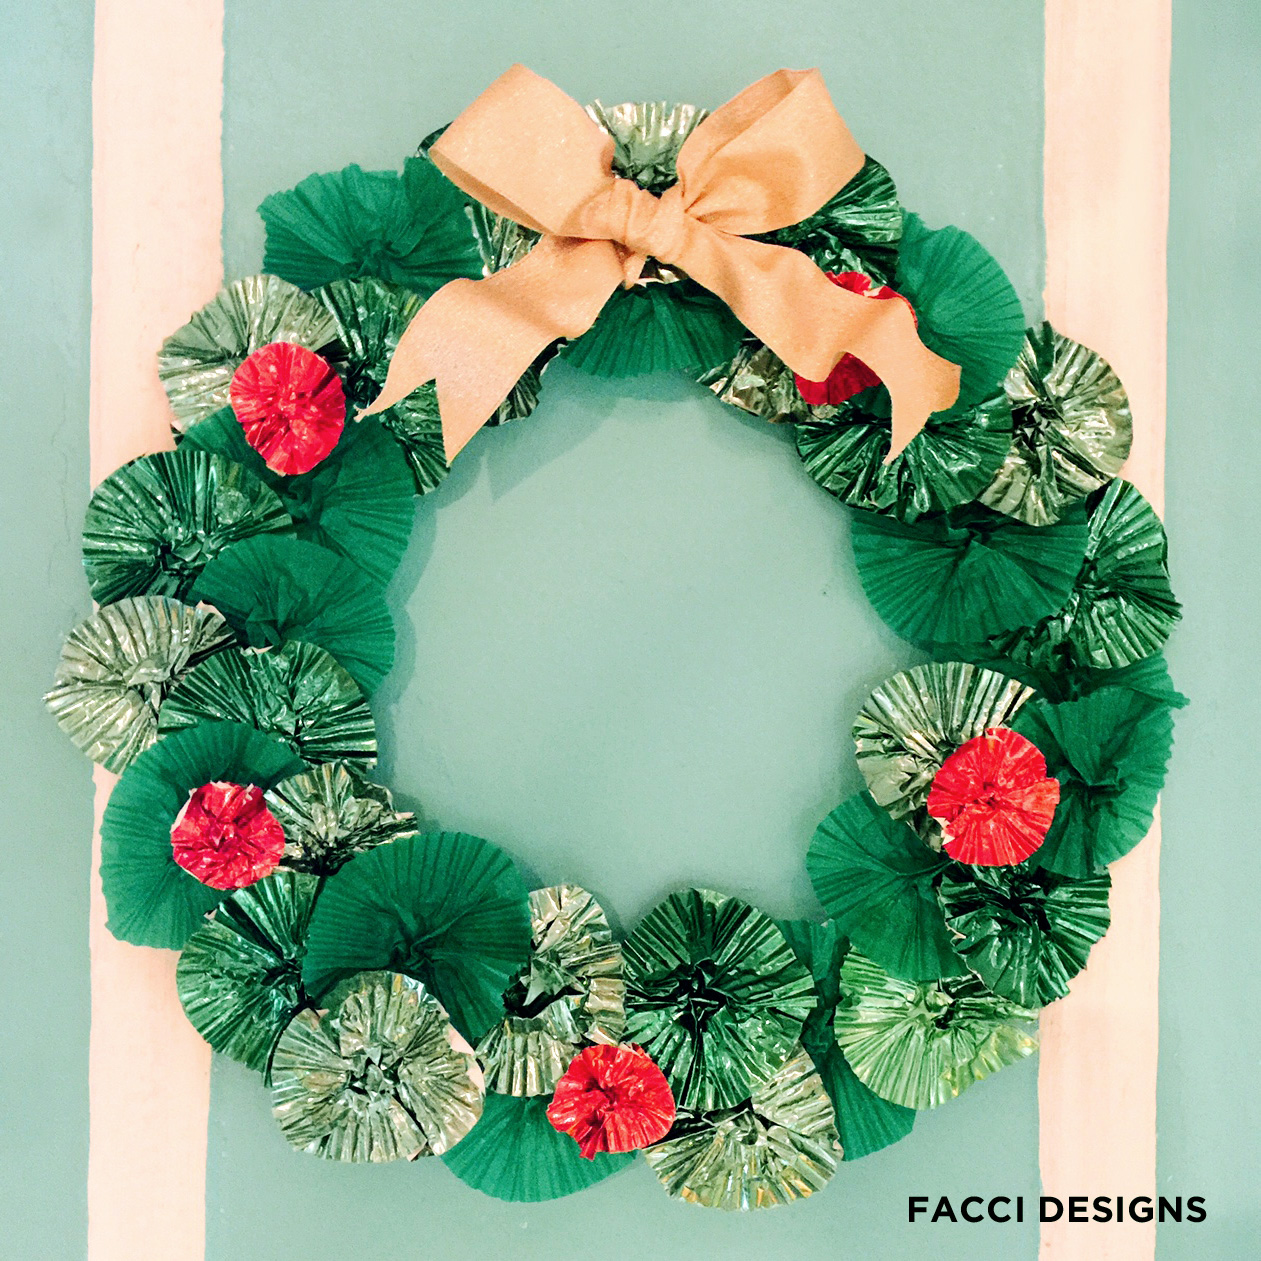 Facci designs diy how to make a cute cupcake wrapper Making wreaths